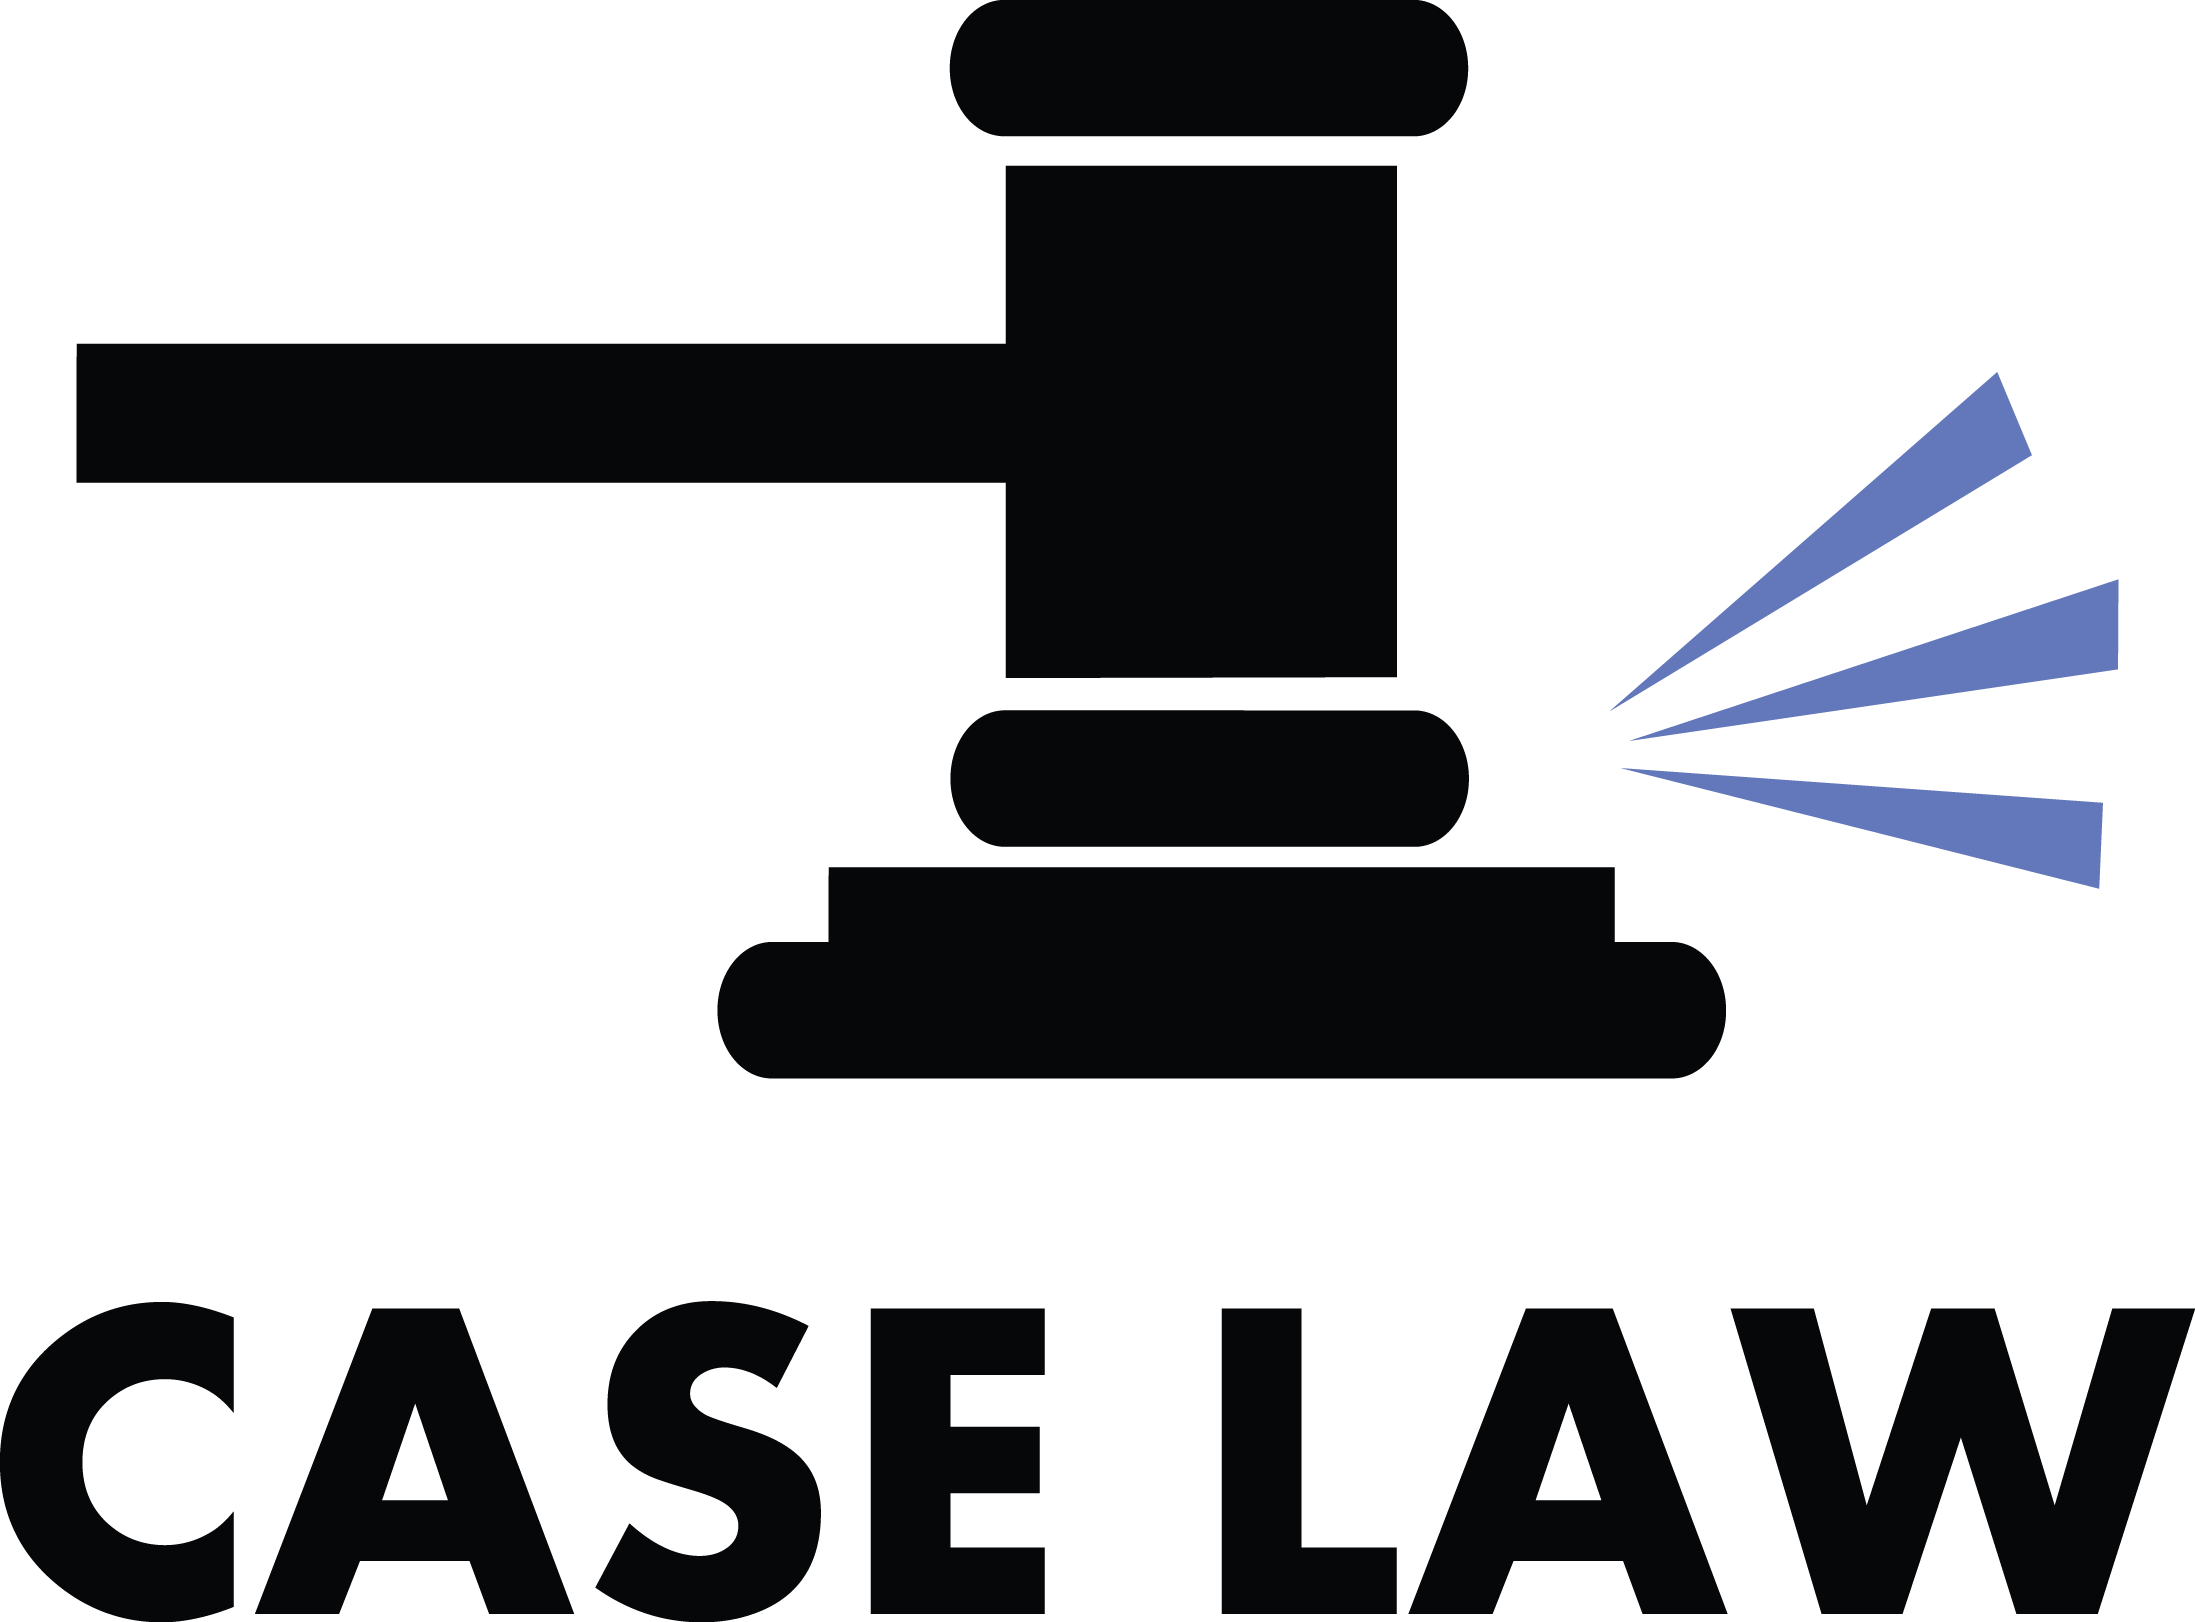 law and case Law of the case doctrine definition: when a court decides upon a rule of law, that decision should continue to govern the same issues in subsequent stages in the same case.